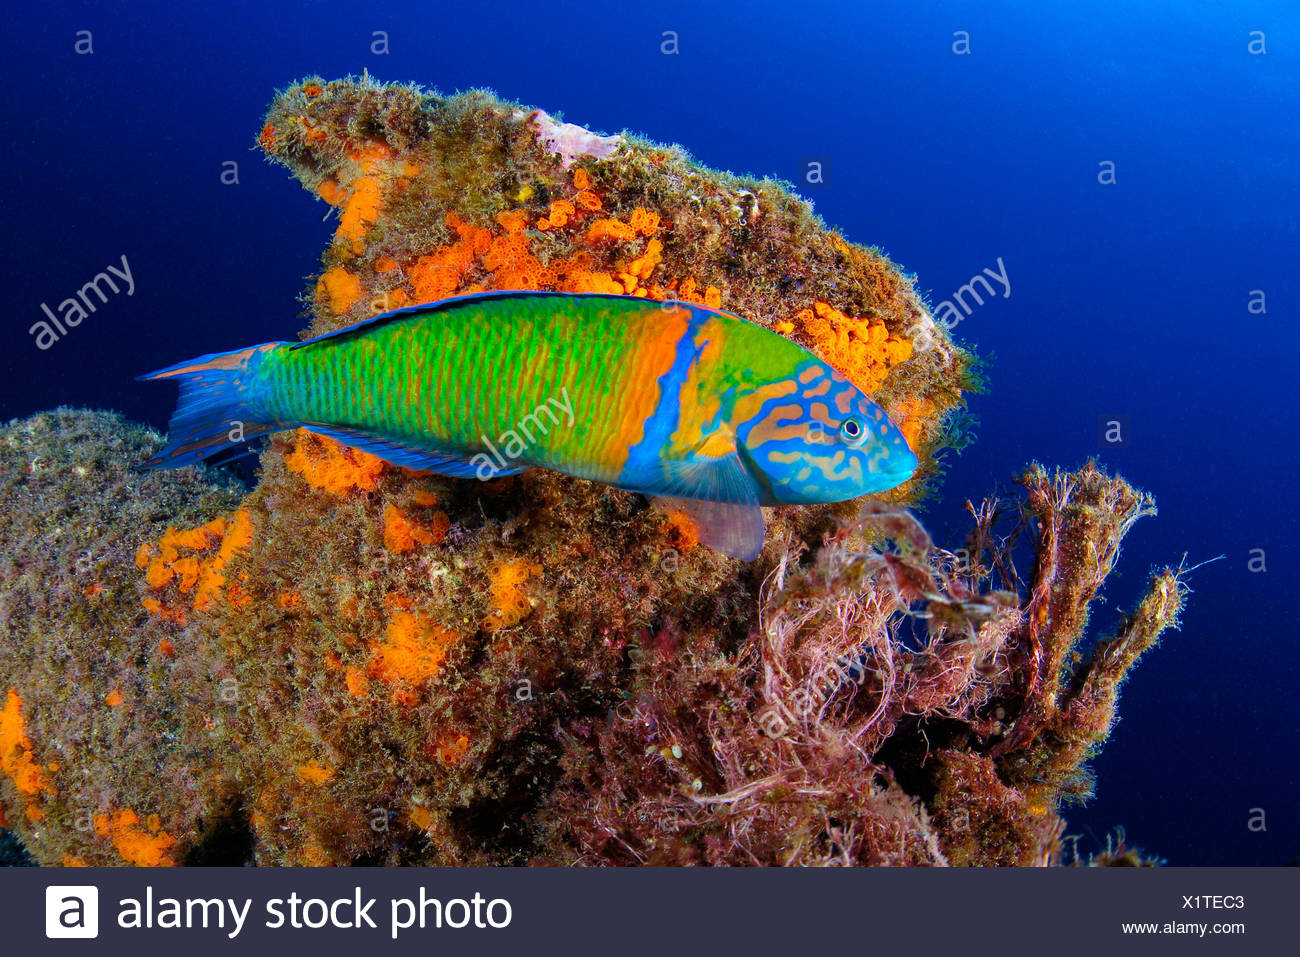 The ornate wrasse, Thalassoma pavo, is a species of wrasse native to the eastern Atlantic Ocean. Here it swims along a bollard of a shipwreck. - Stock Image